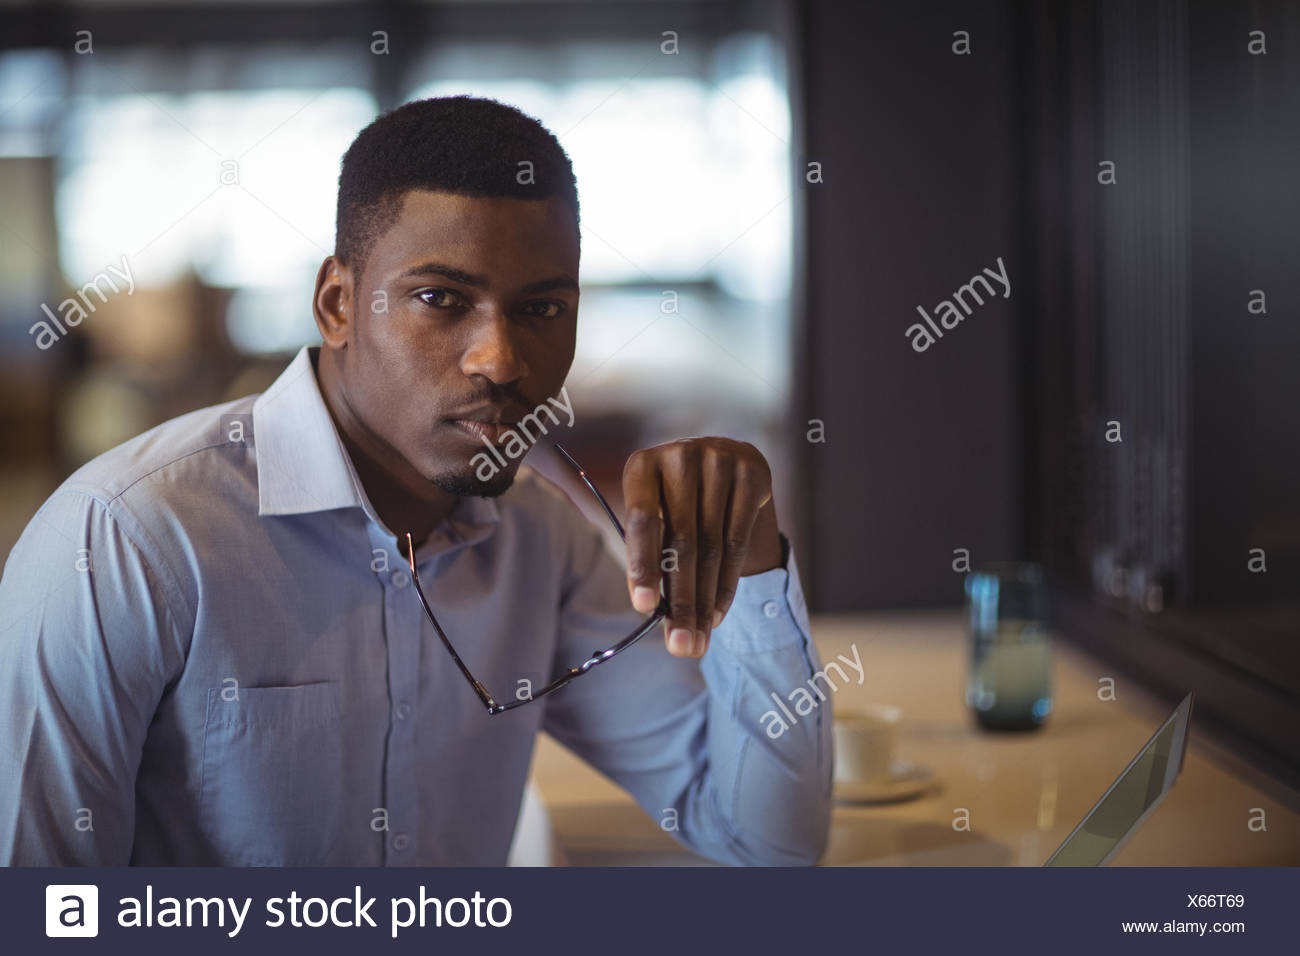 Businessman holding spectacle sitting at desk - Stock Image